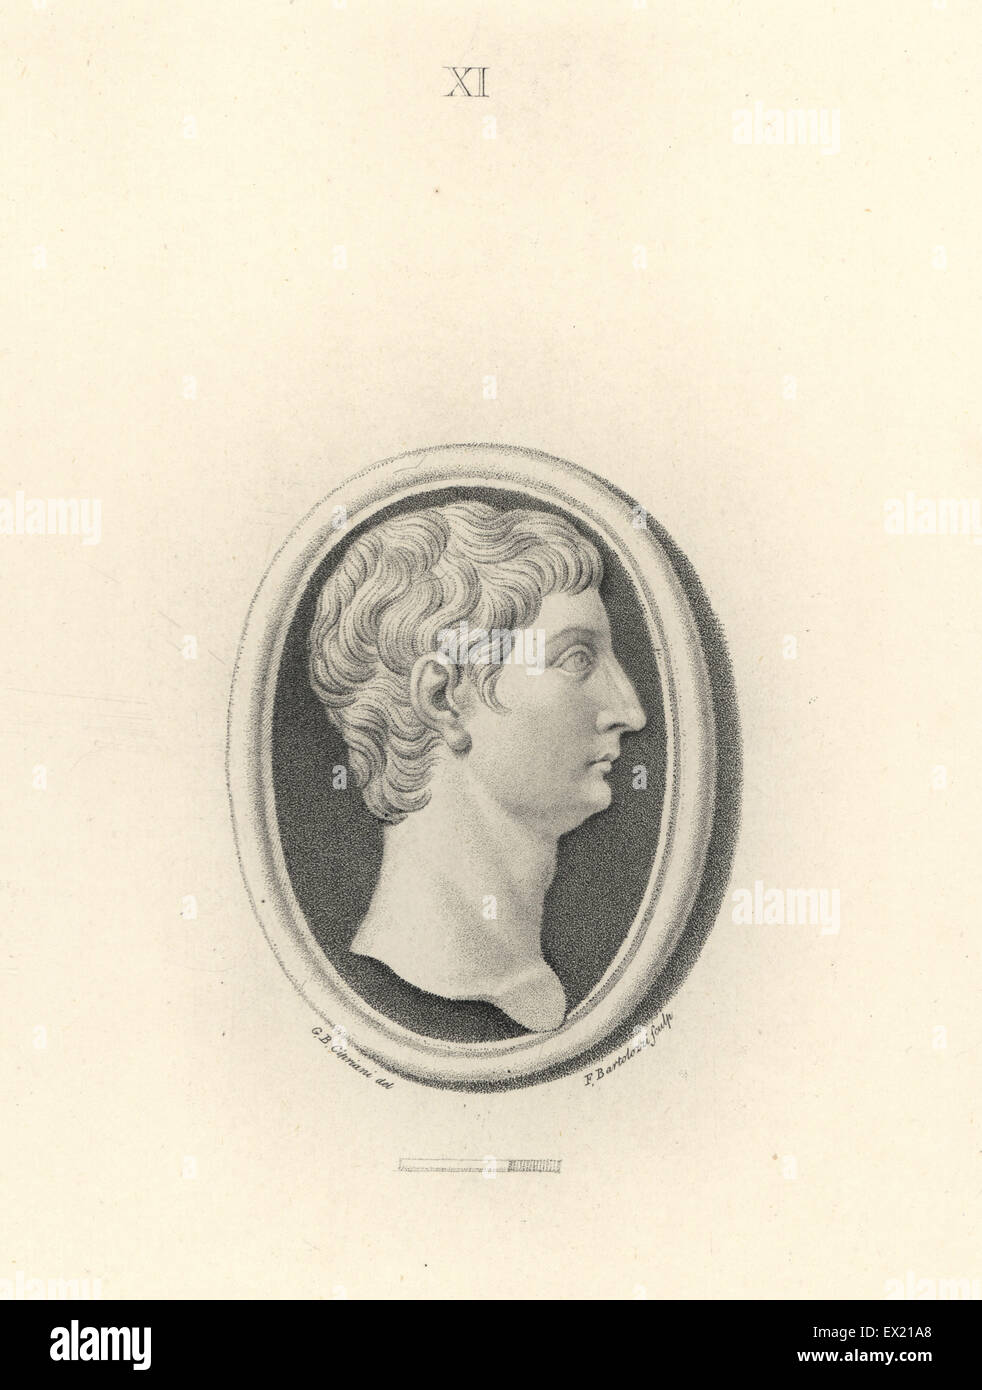 Head of Roman Emperor Tiberius. Copperplate engraving by Francesco Bartolozzi after a design by Giovanni Battista - Stock Image